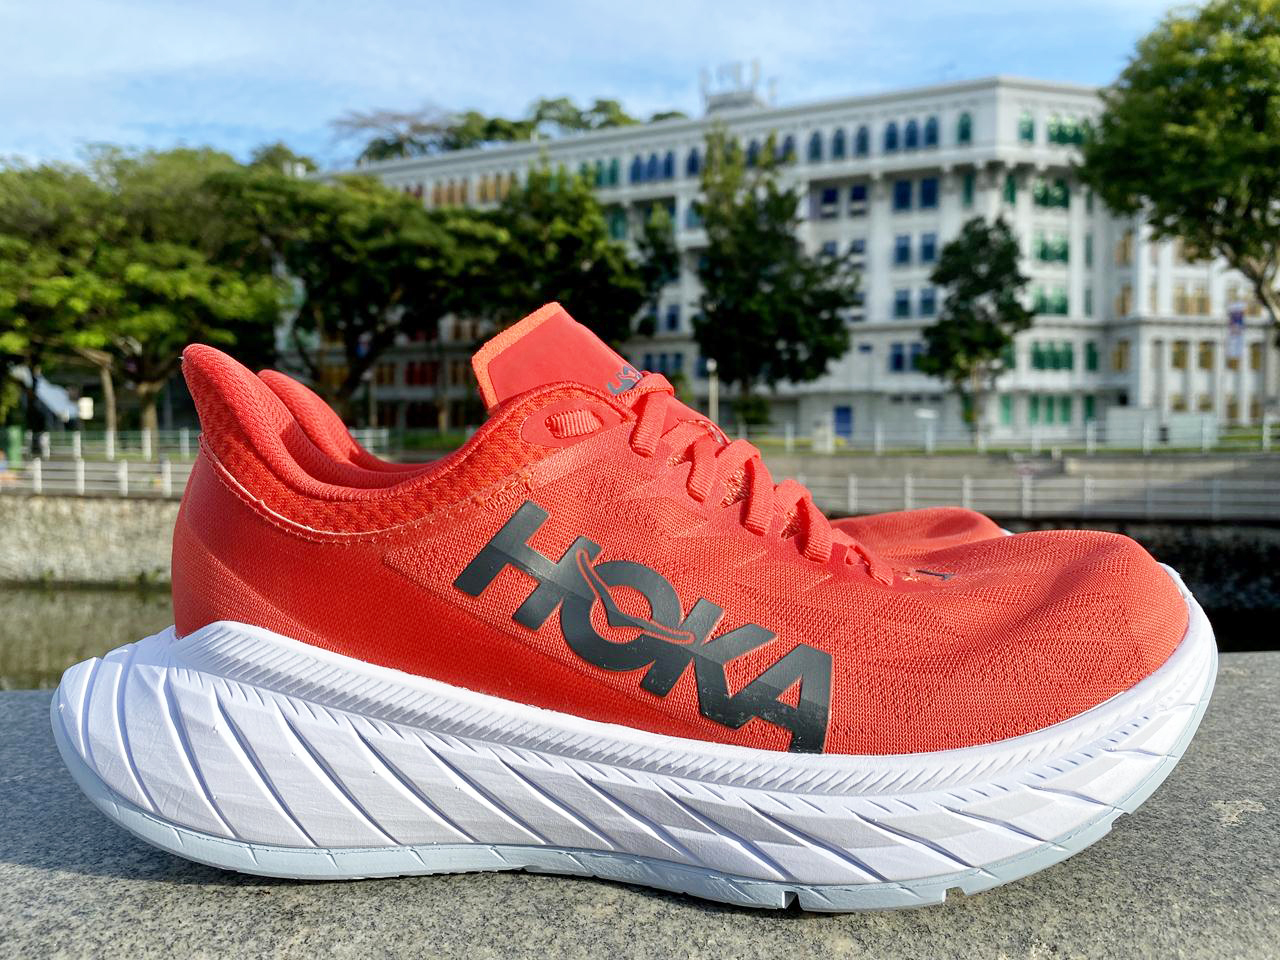 Hoka One One Carbon X 2 - Lateral Side